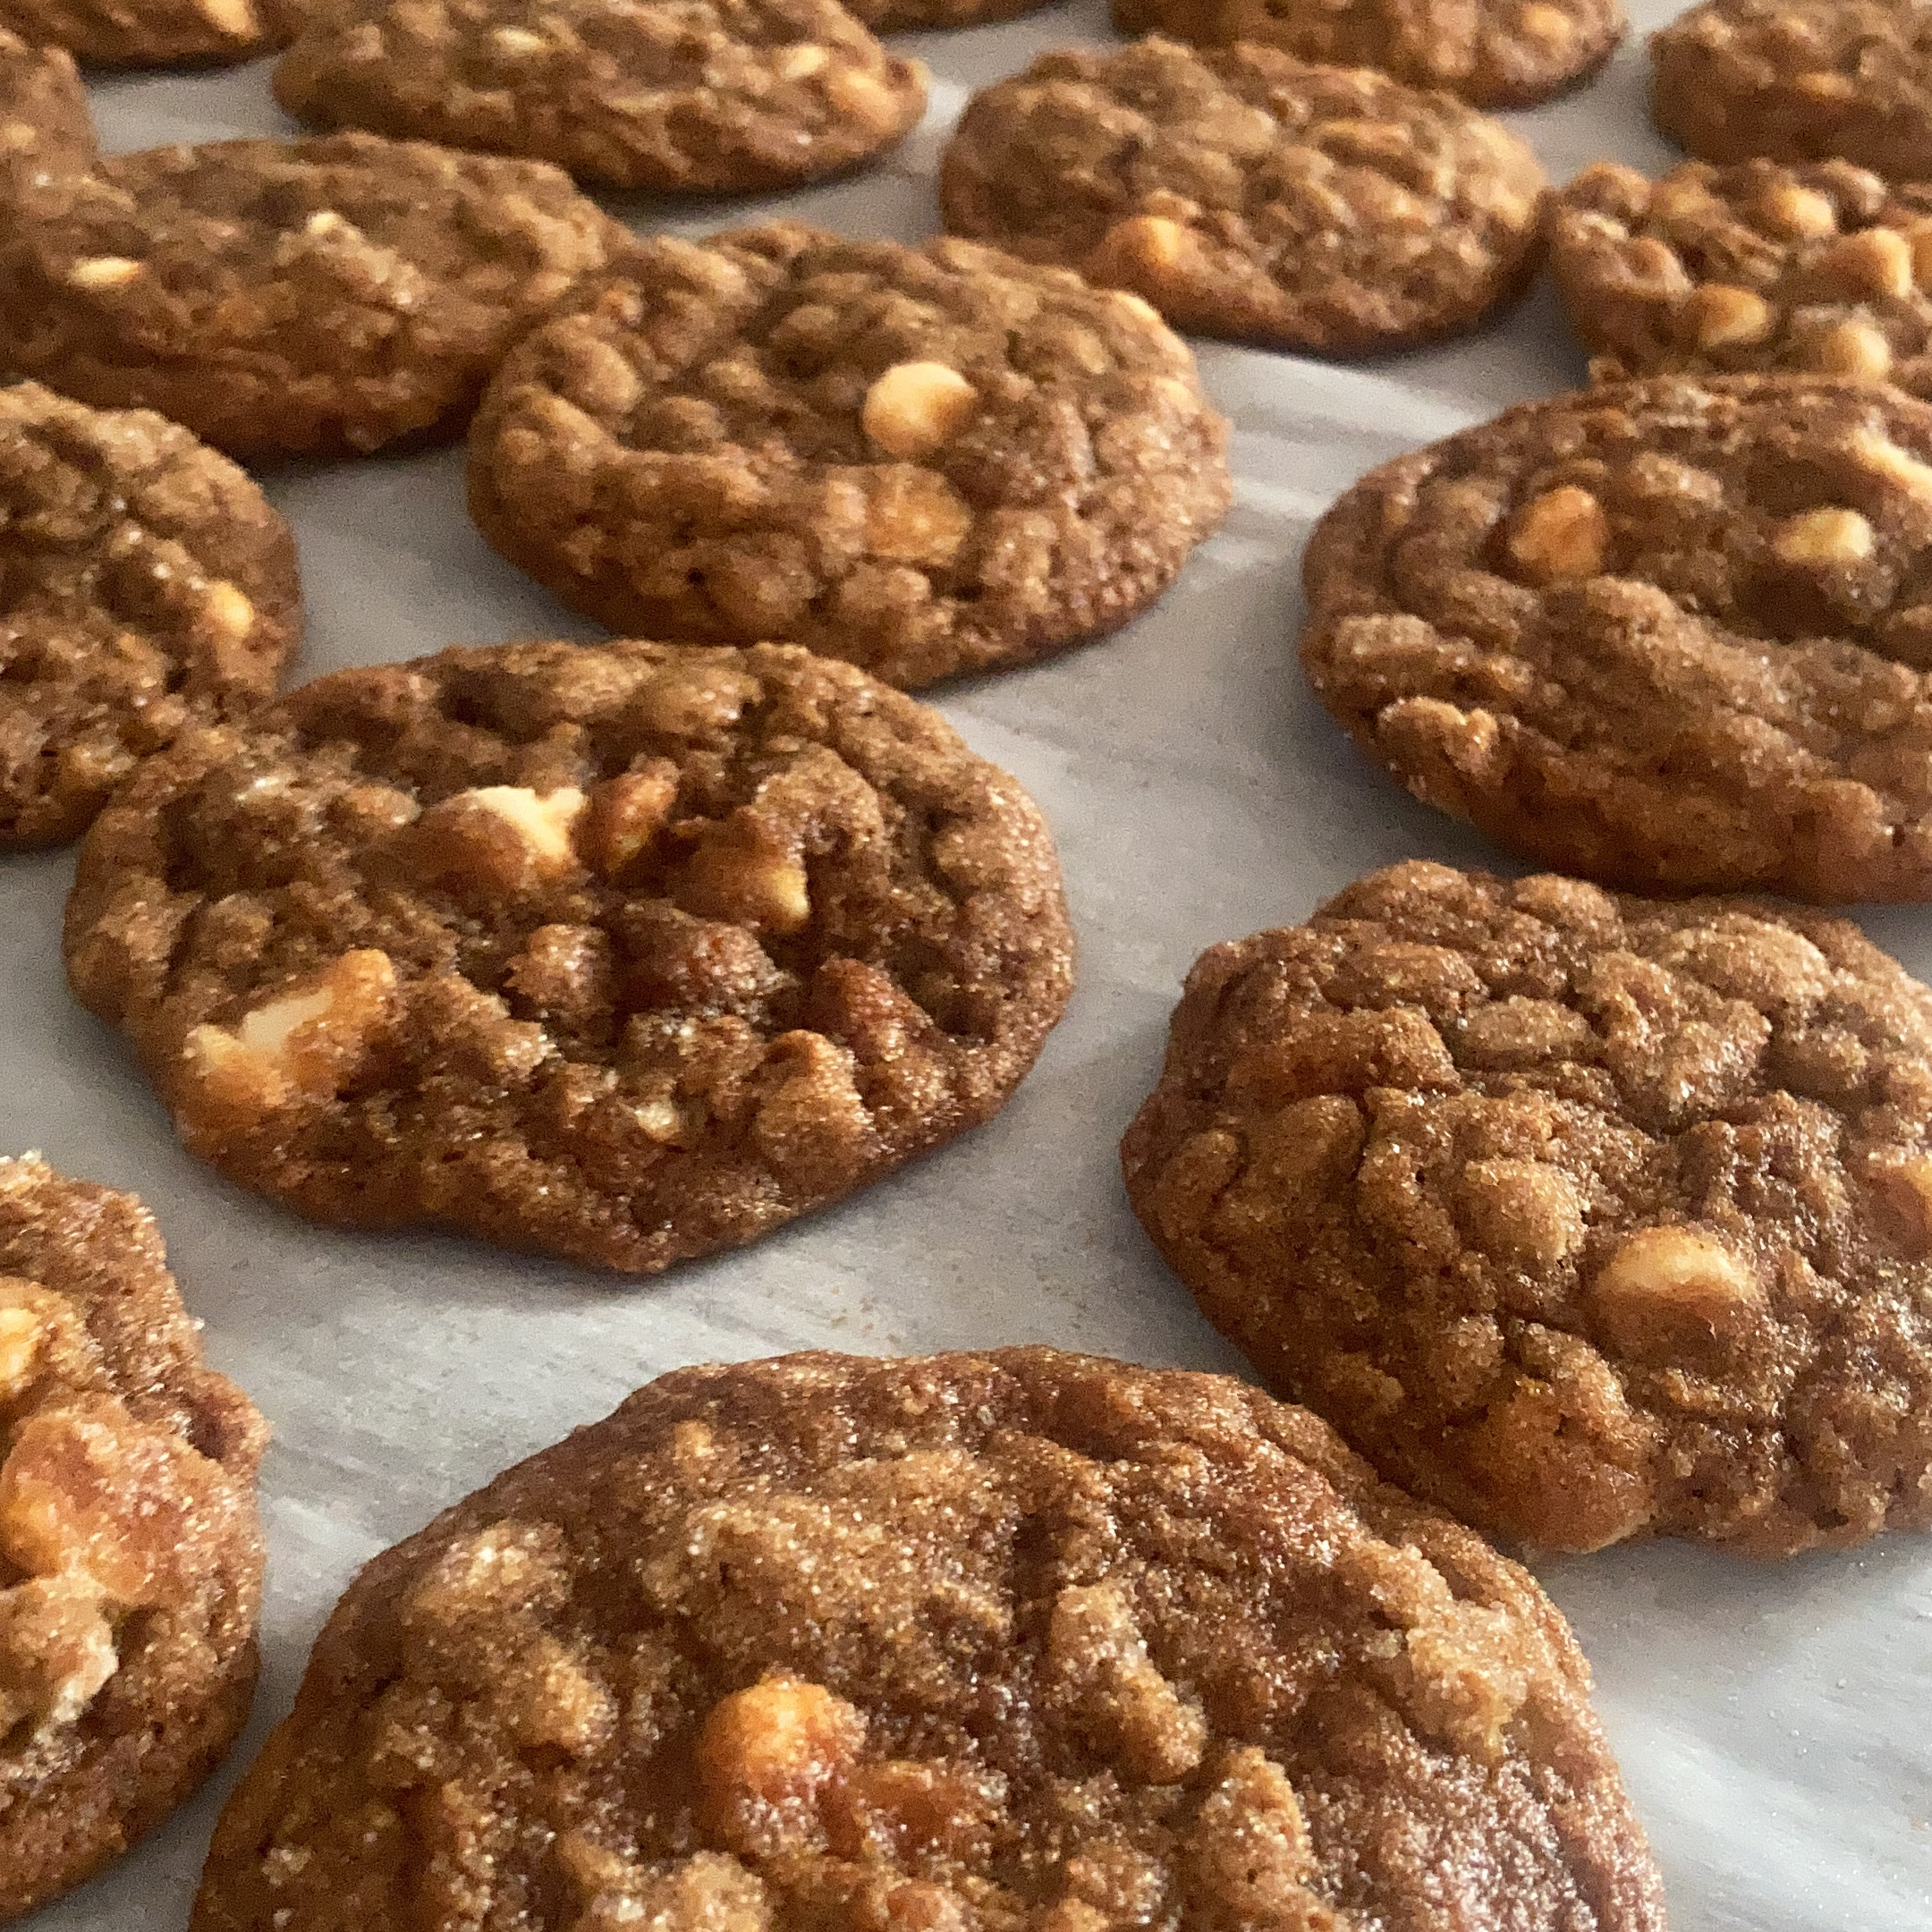 Molasses Oatmeal White Chocolate Chip Cookies The Cookie Girl